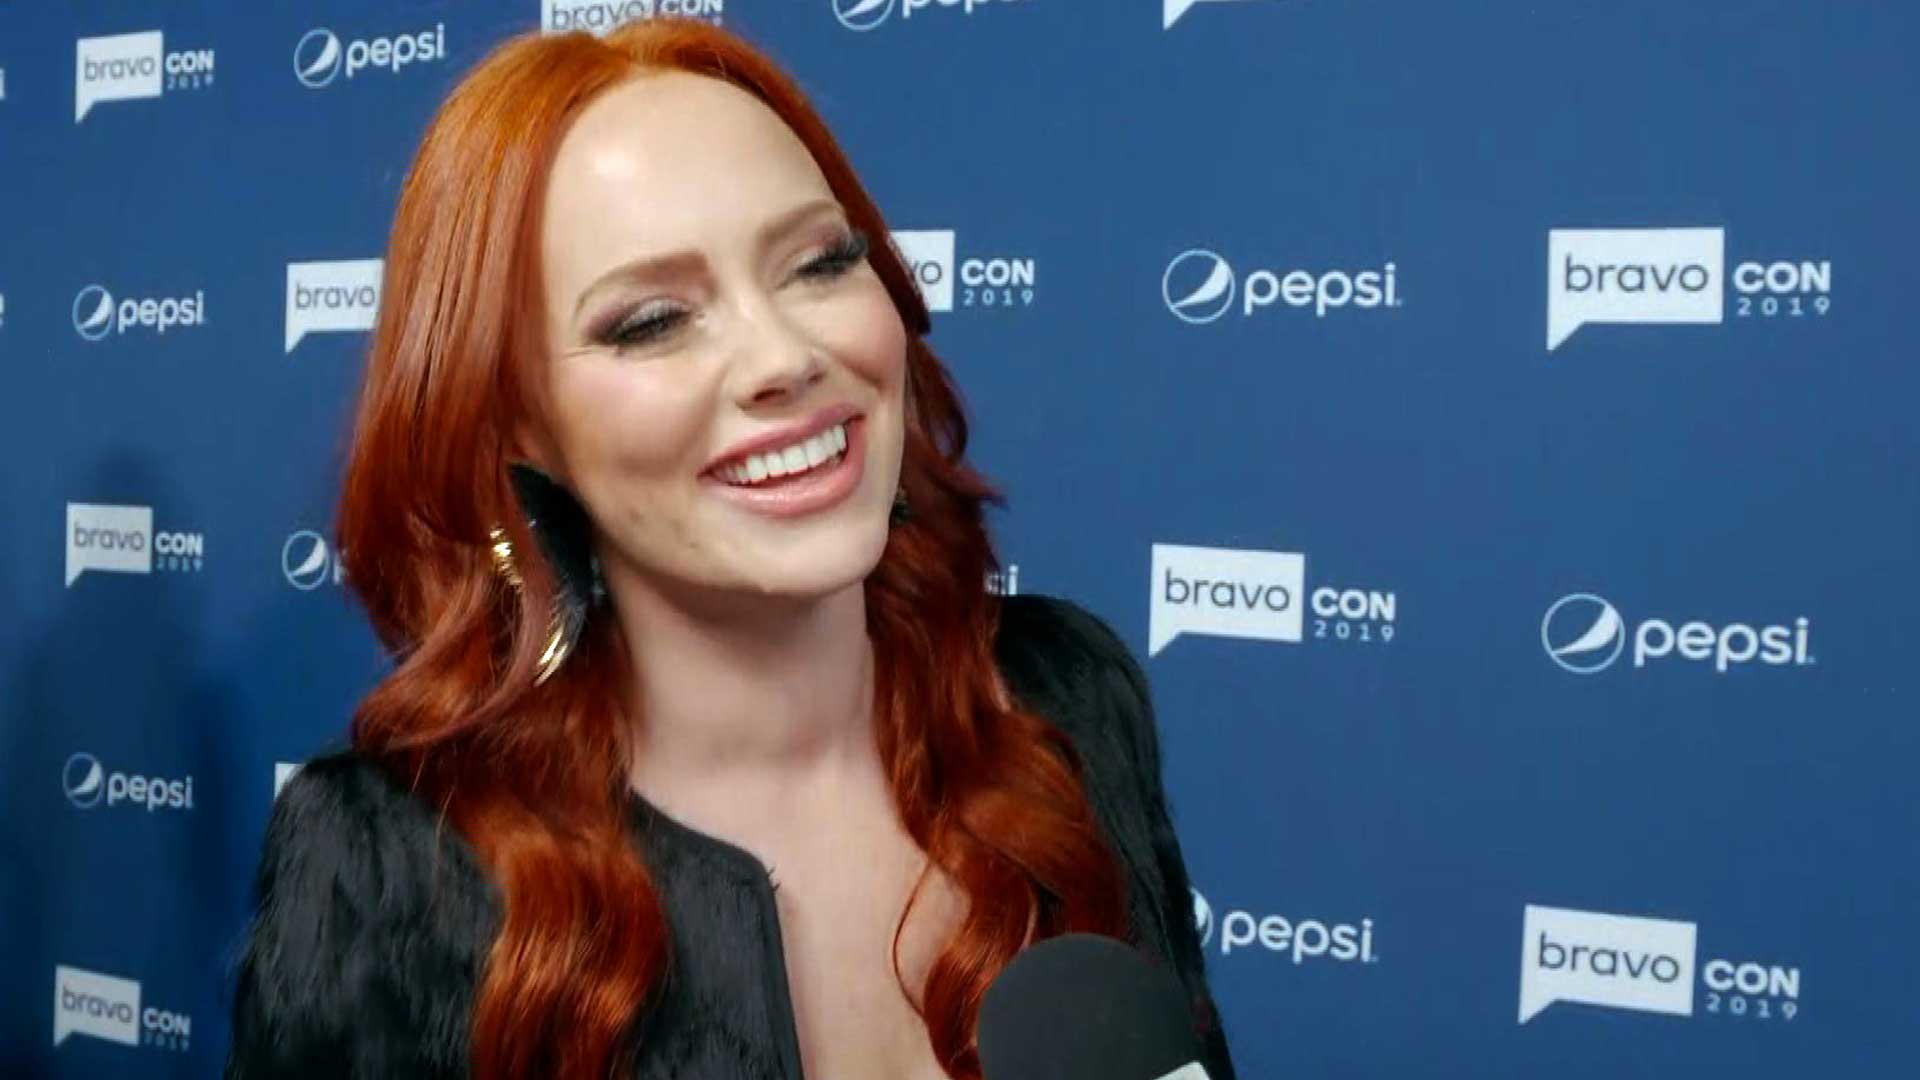 'Southern Charm's Kathryn Dennis on Custody Battle With Thomas Ravenal & Finding New 'Perspective' (Exclusive)